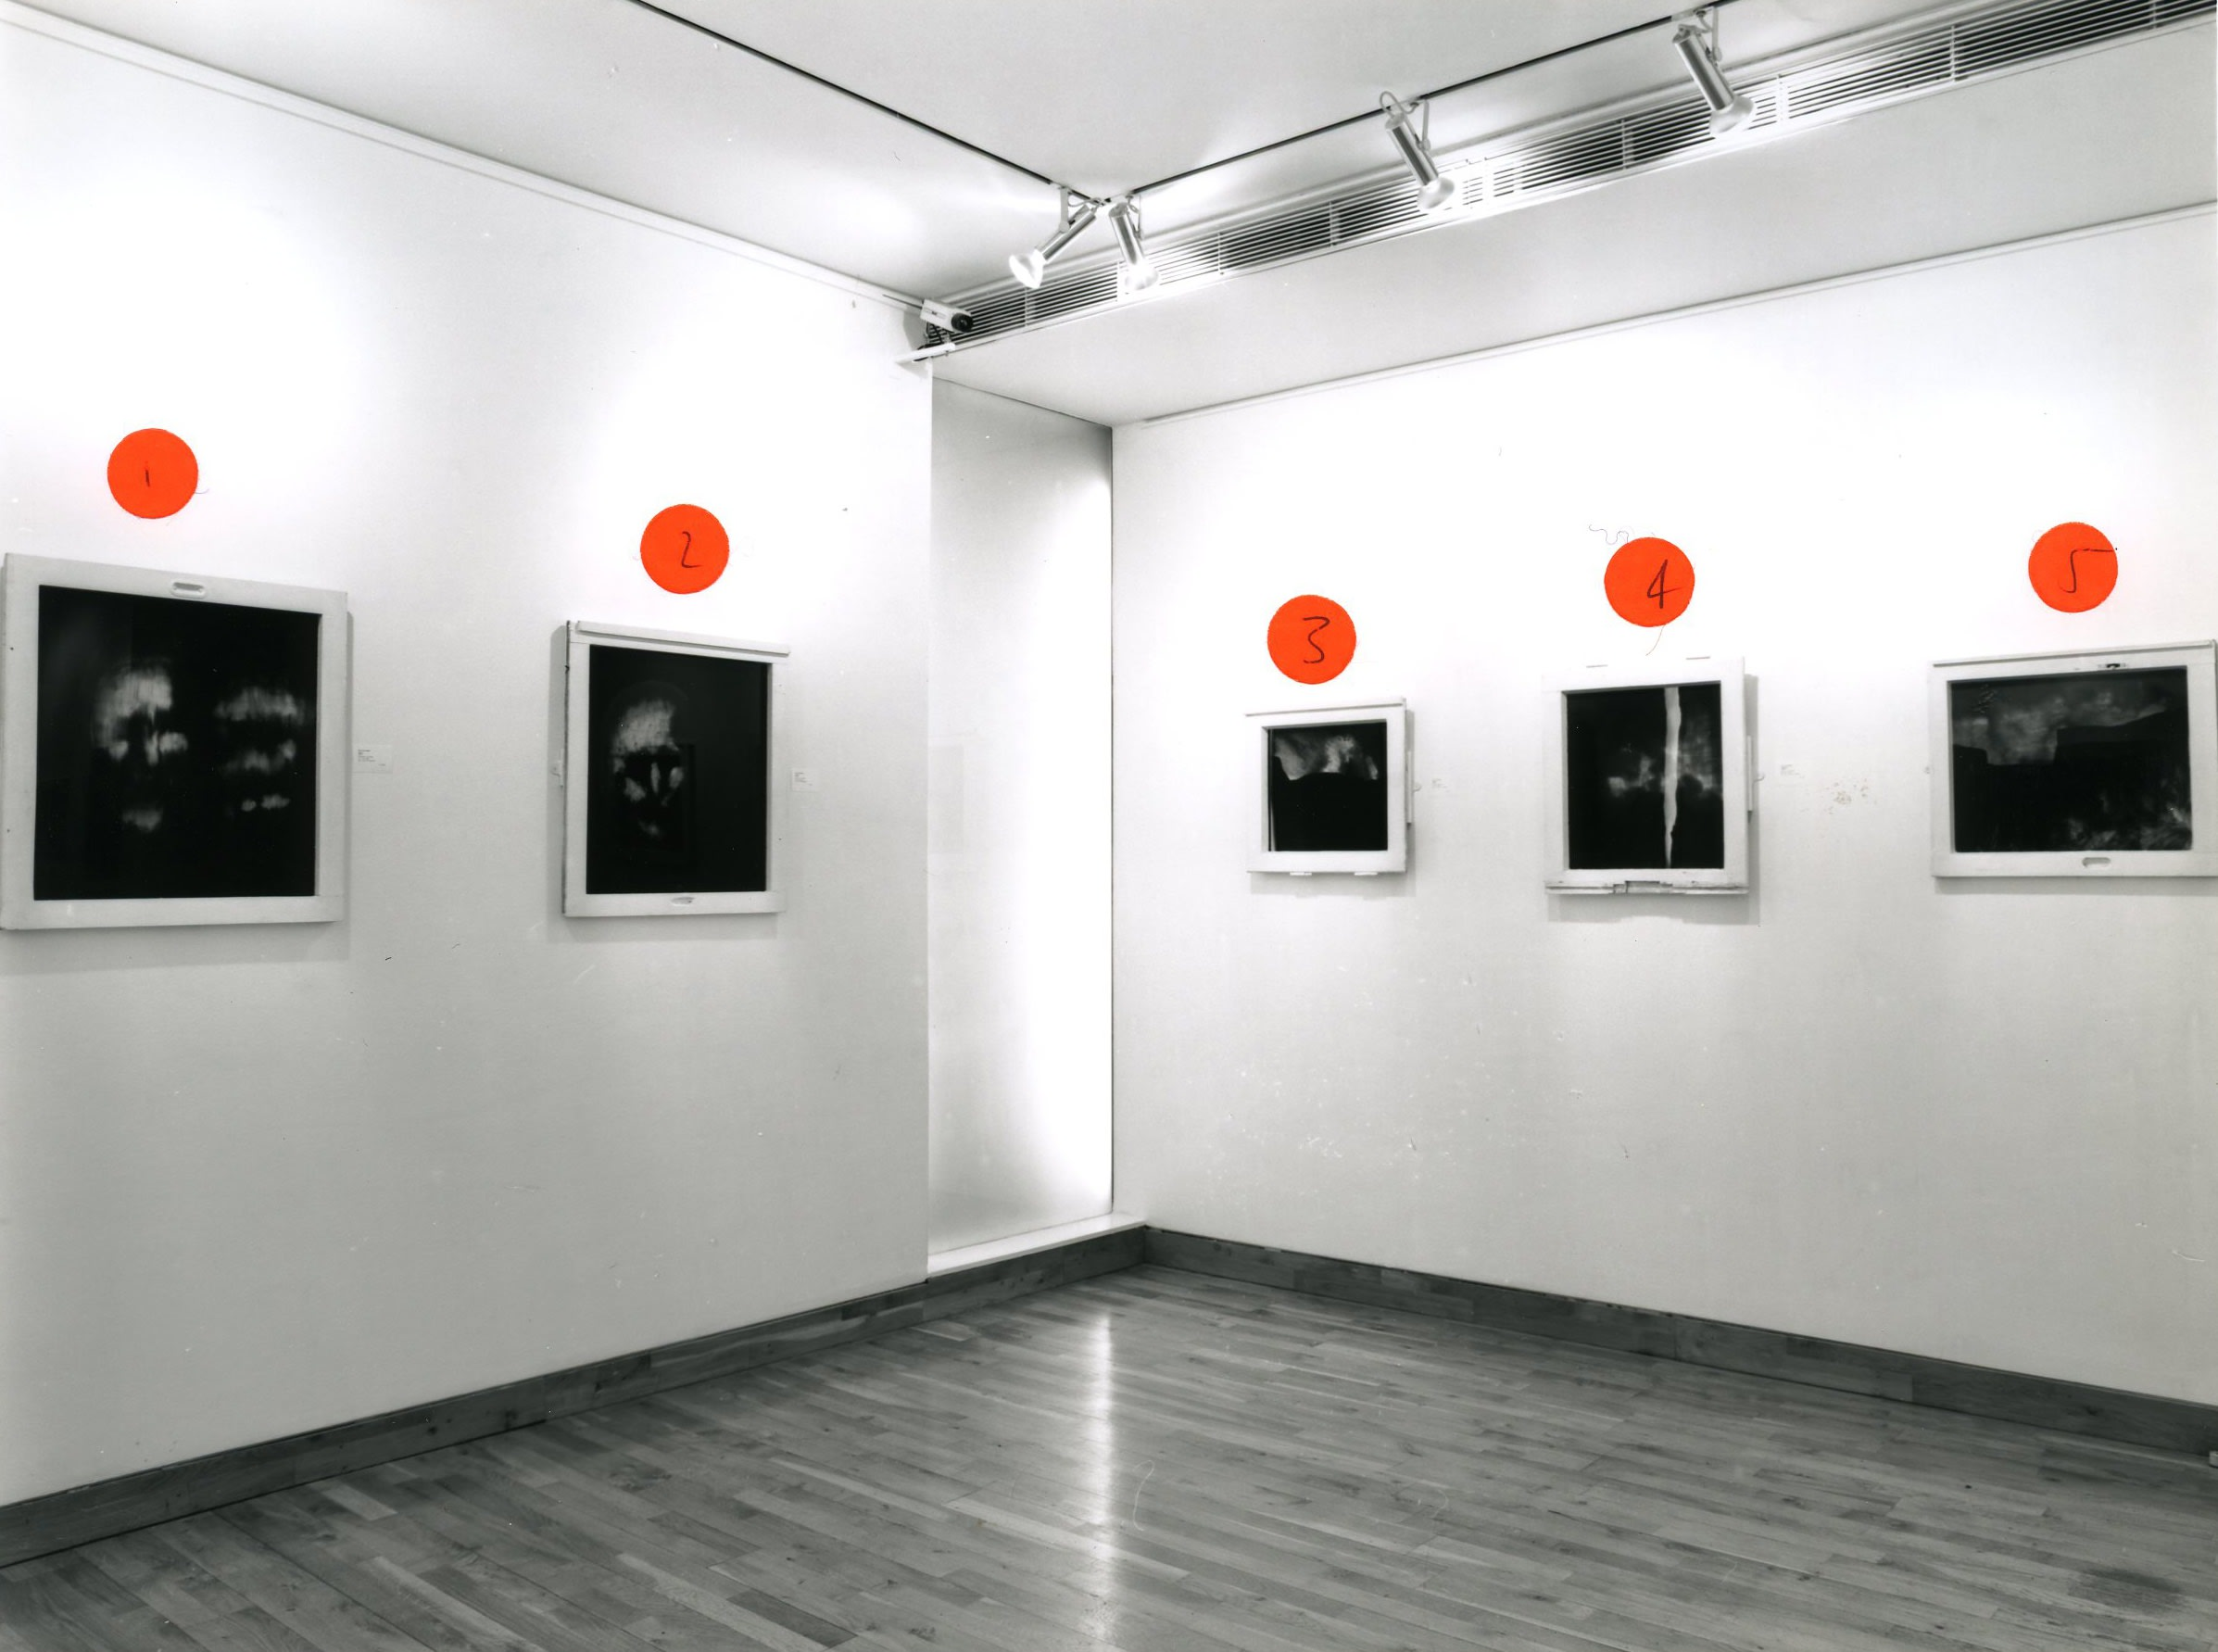 """<span class=""""link fancybox-details-link""""><a href=""""/exhibitions/173/works/image_standalone776/"""">View Detail Page</a></span><p>BEN KADISHMAN   PAINTINGS 1993 - 1998   29 JAN - 13 MAR 1998   Installation View</p>"""